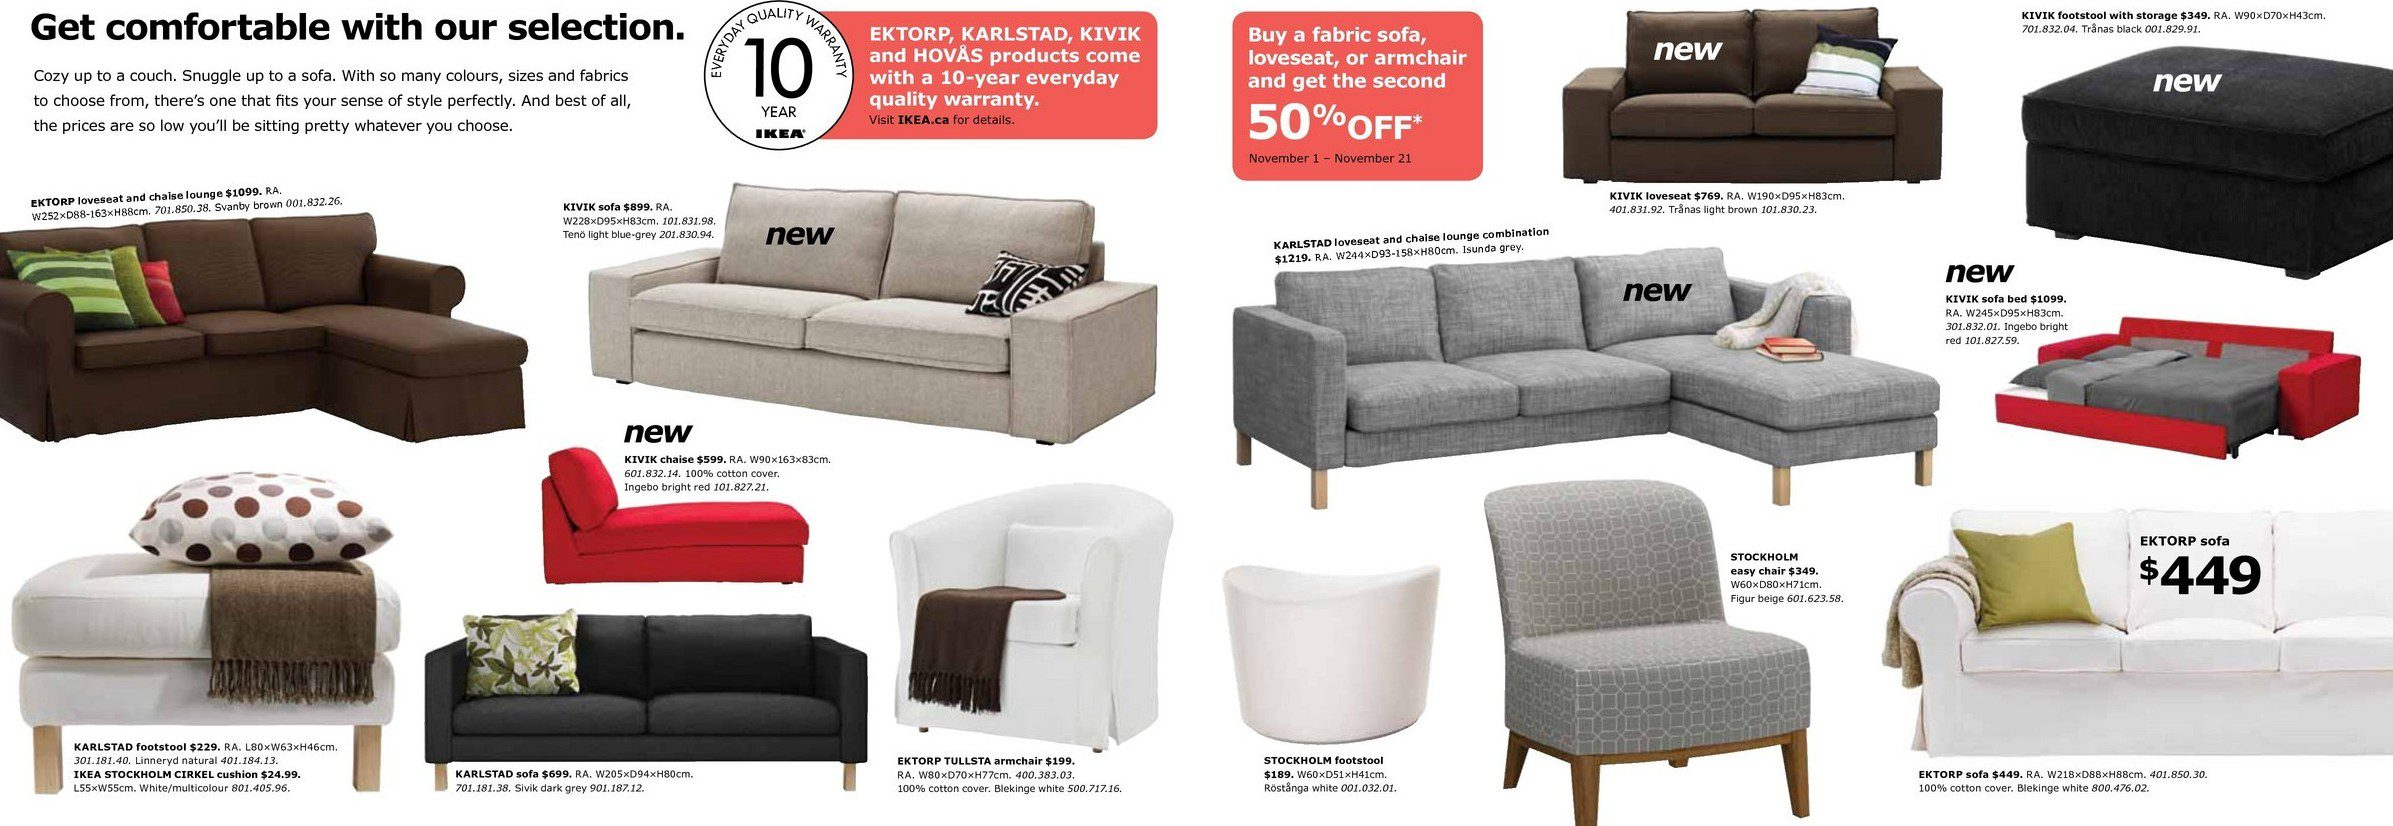 CANADA 50% off your 2nd fabric sofa purchase at IKEA fort